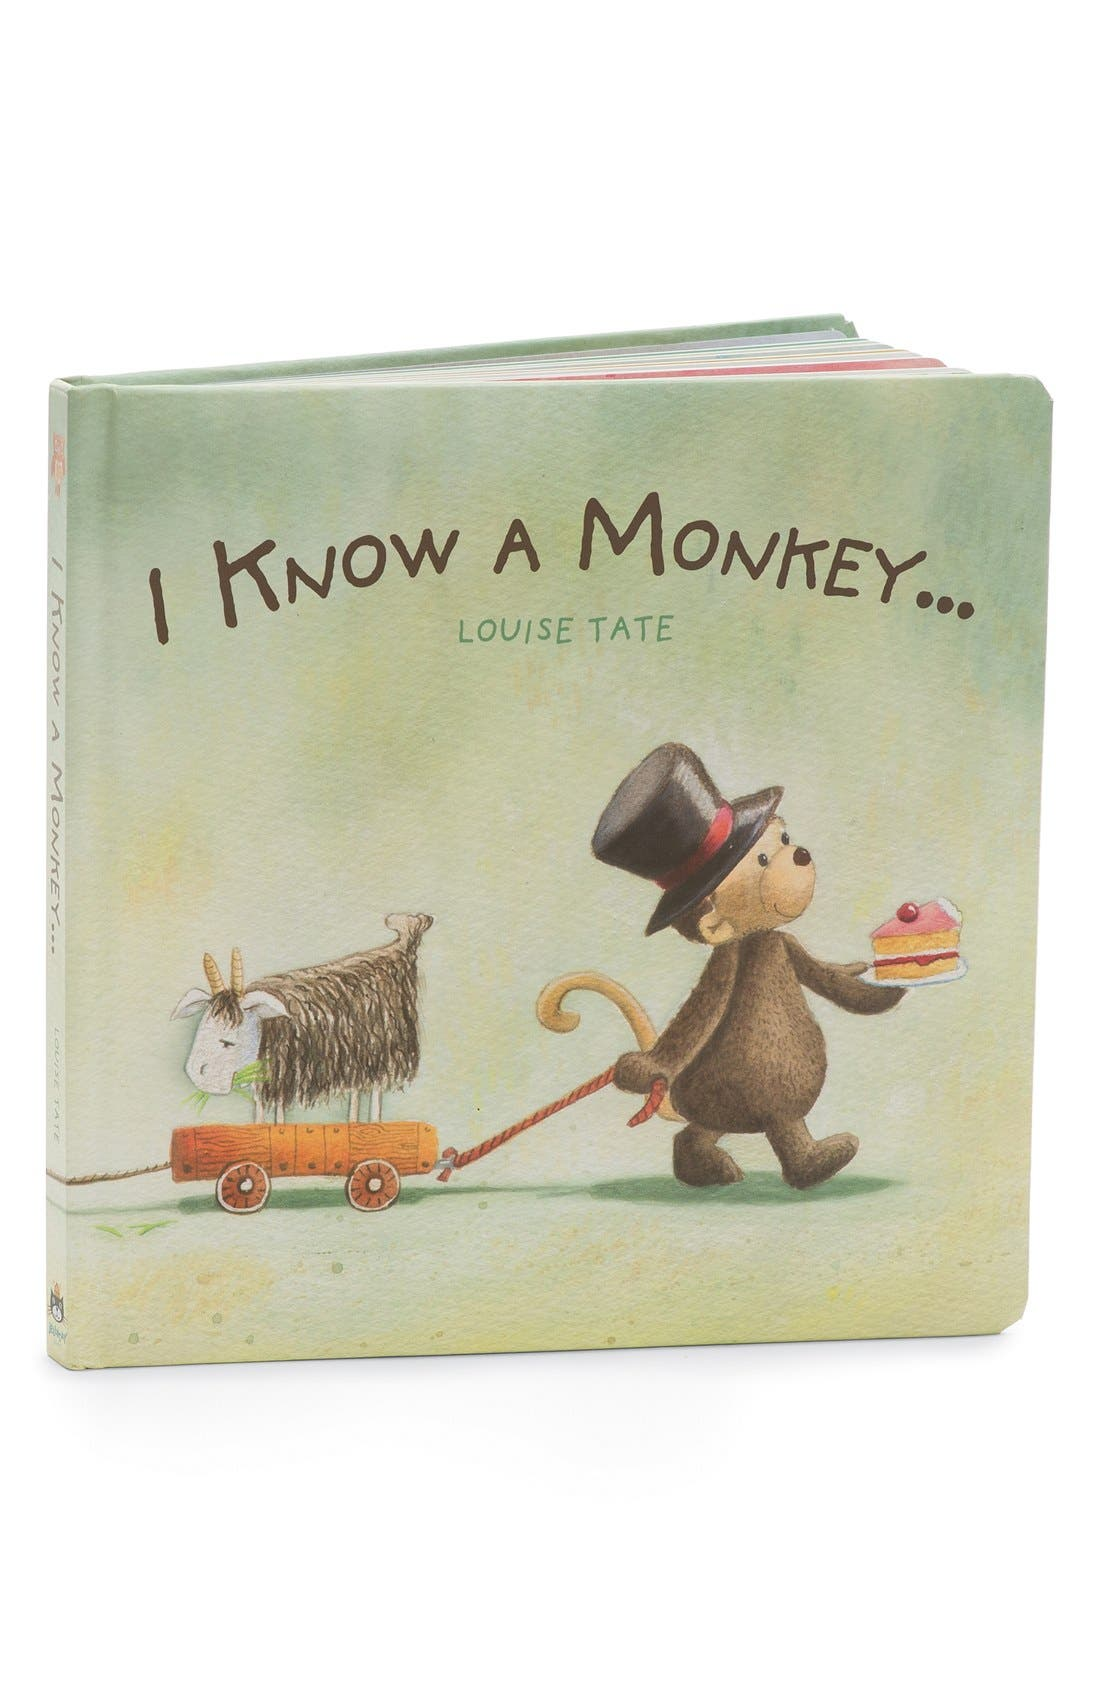 JELLYCAT 'I Know a Monkey' Board Book